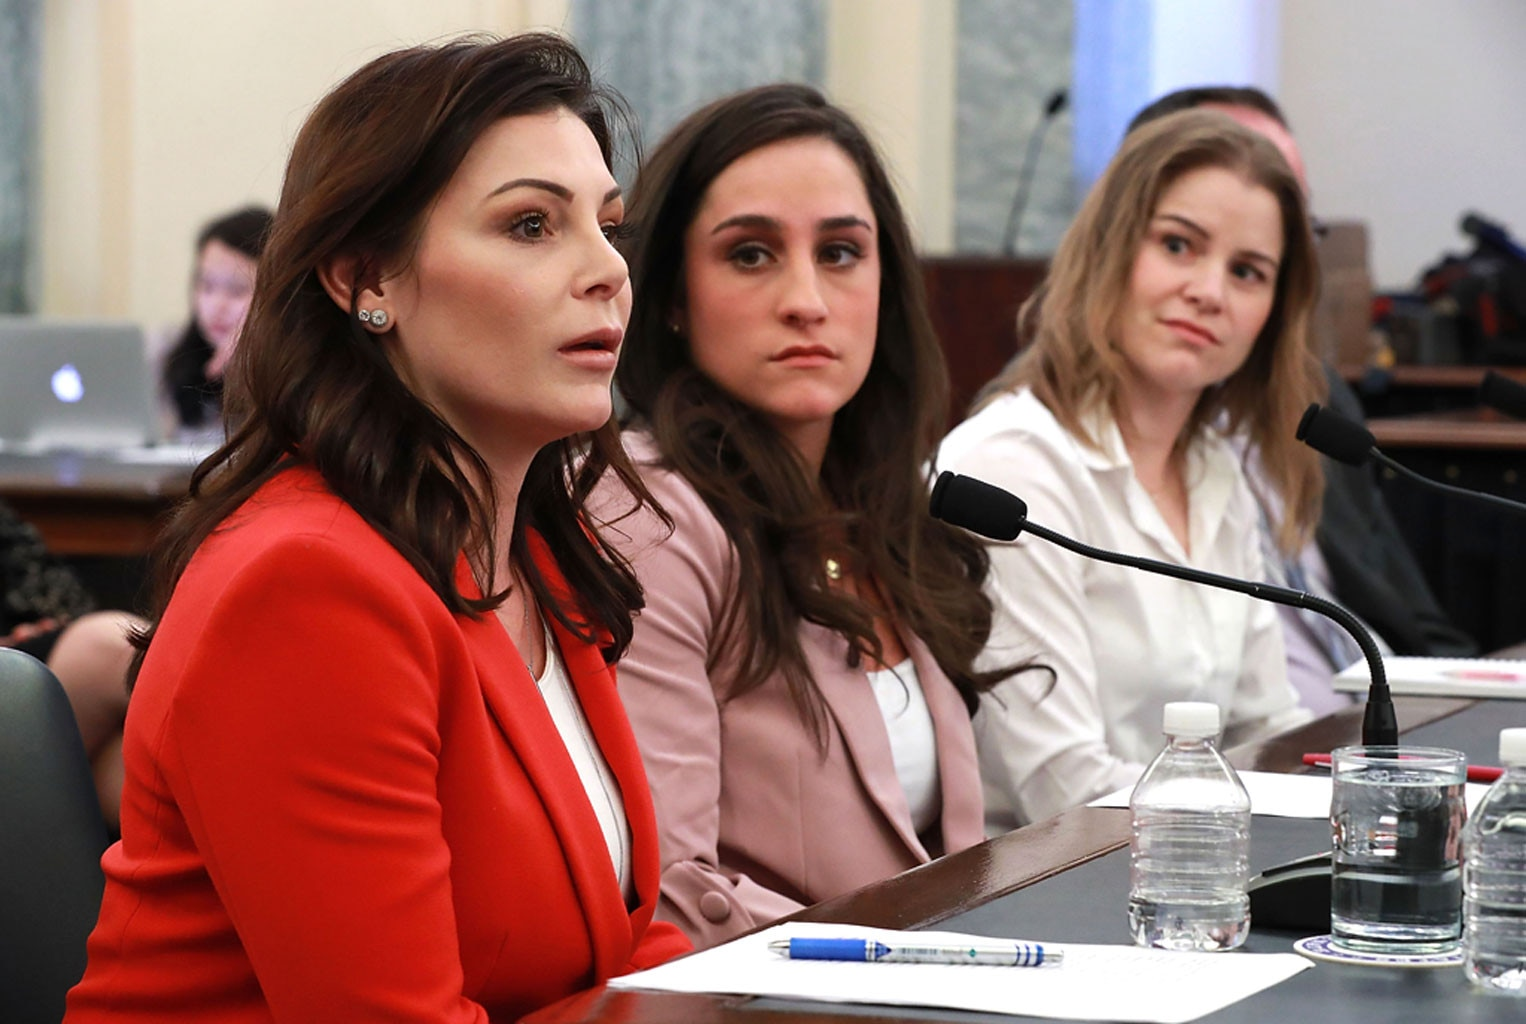 Gymnast Wieber tells Senate panel Nassar abuse began at age 14